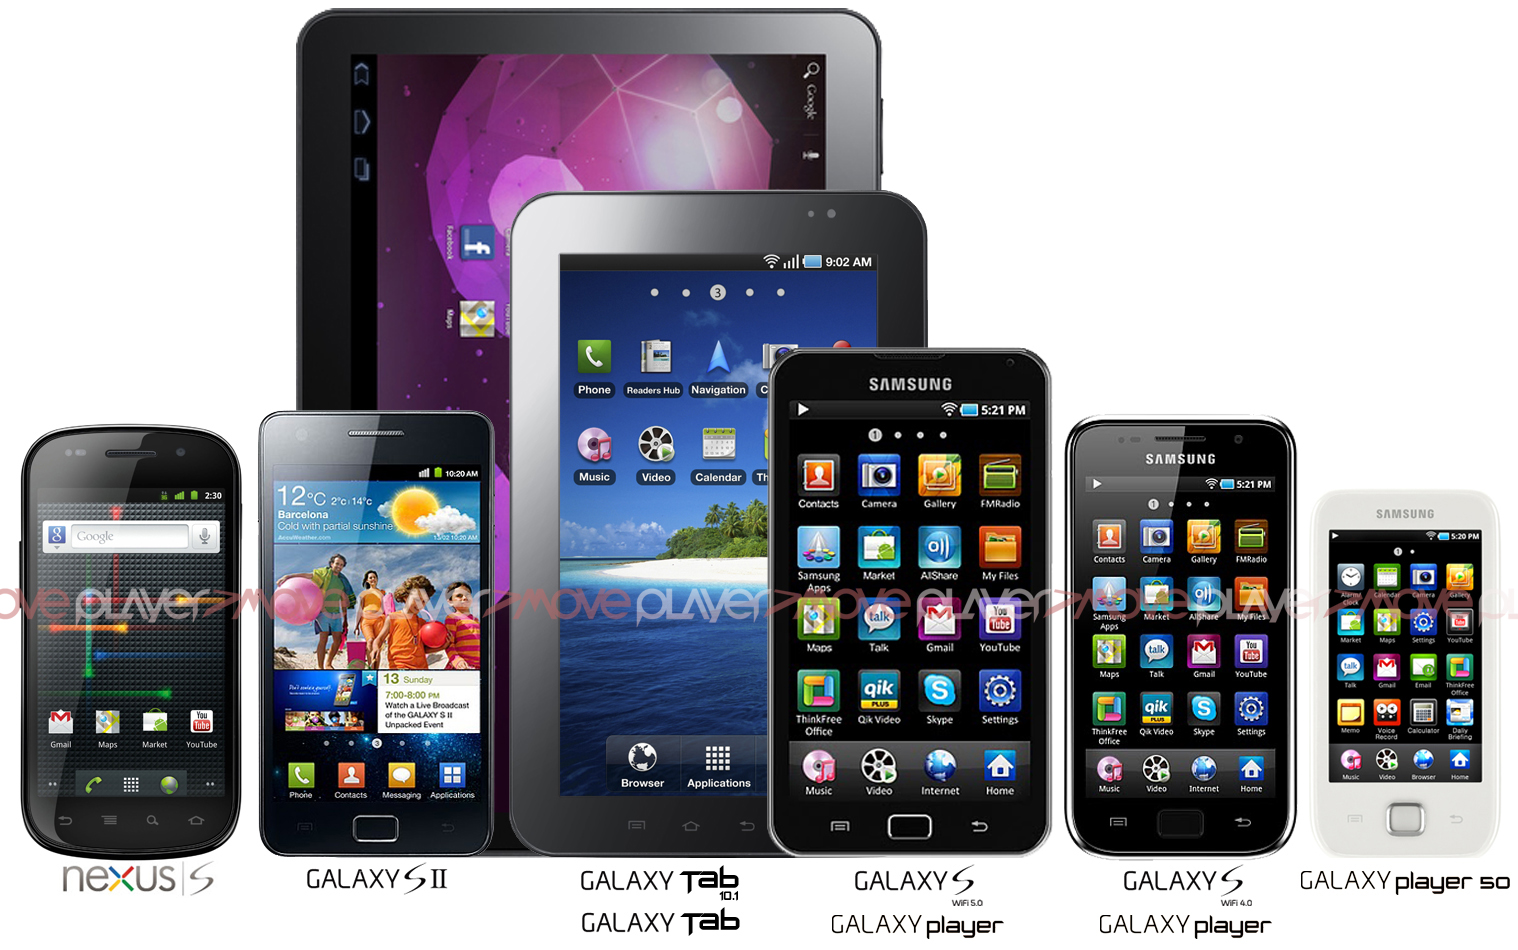 PICKERING,AJAX,WHITBY,OSHAWA,CLARINGTON,UXBRIDGE,SCUGOG,BROCK - Samsung Galaxy S Size